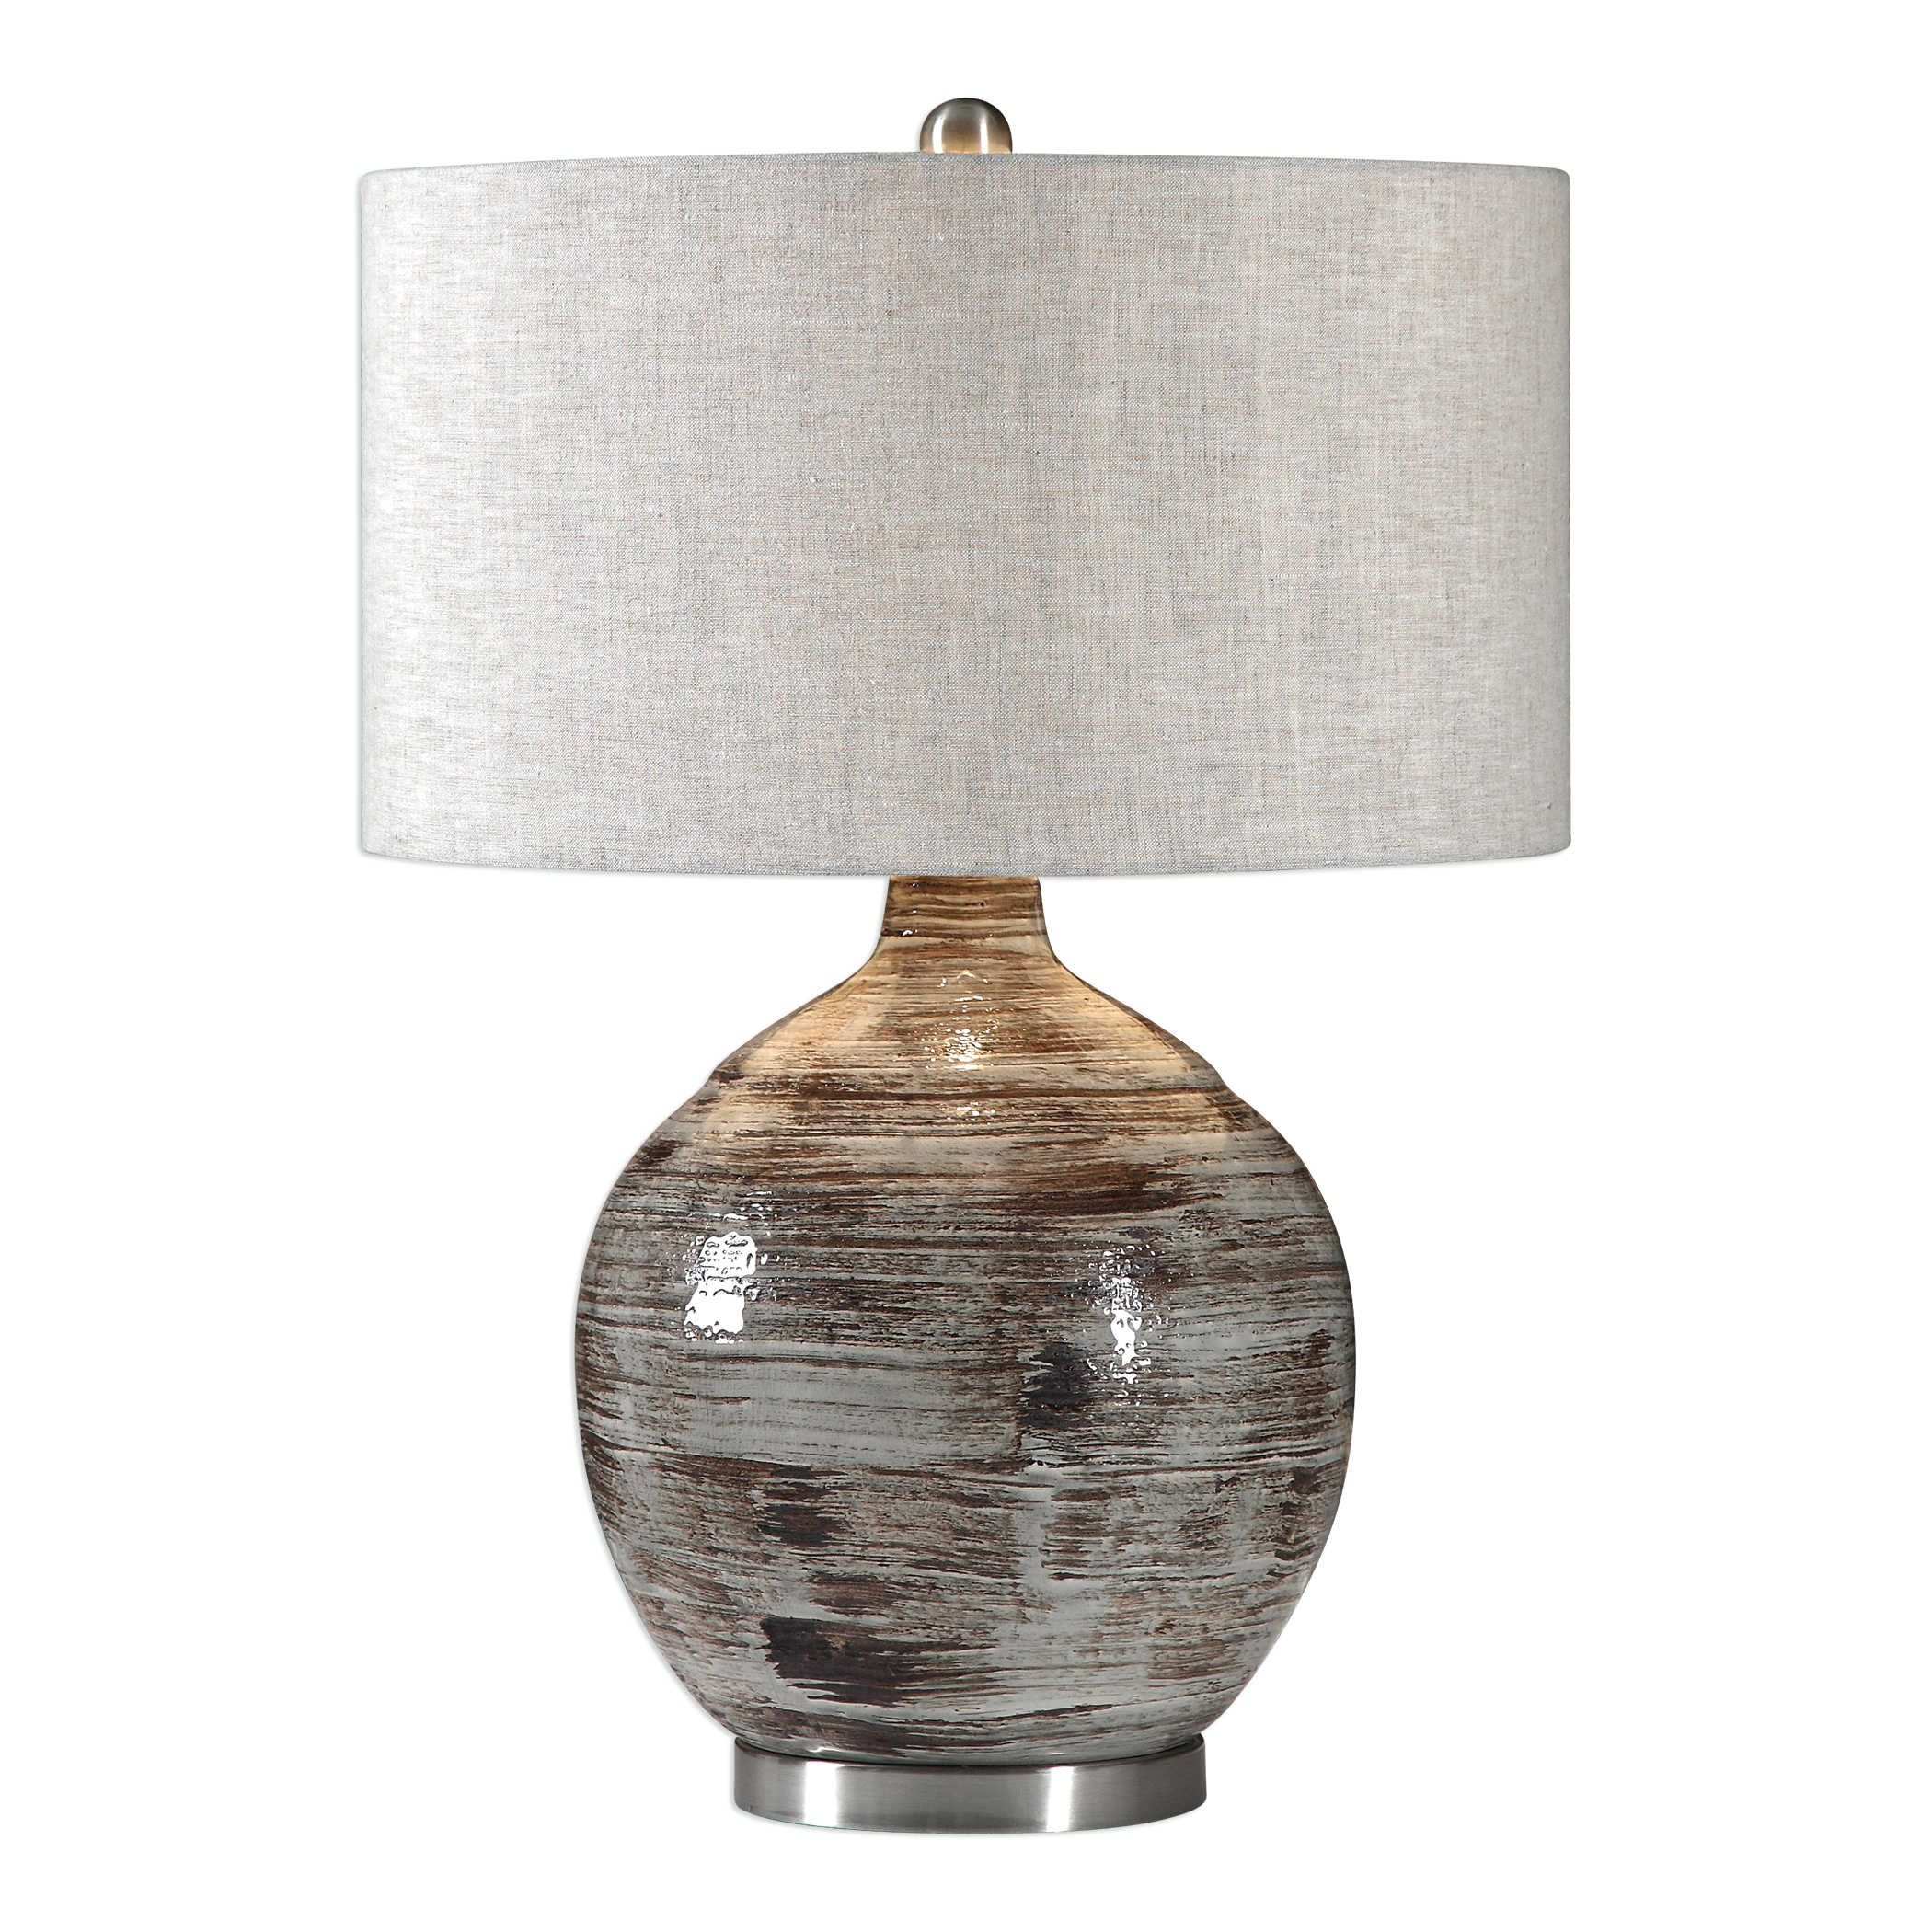 Uttermost Tamula Table Lamp Ceramic Distressed Shade Lighting Lampshade Distressed Contemporary